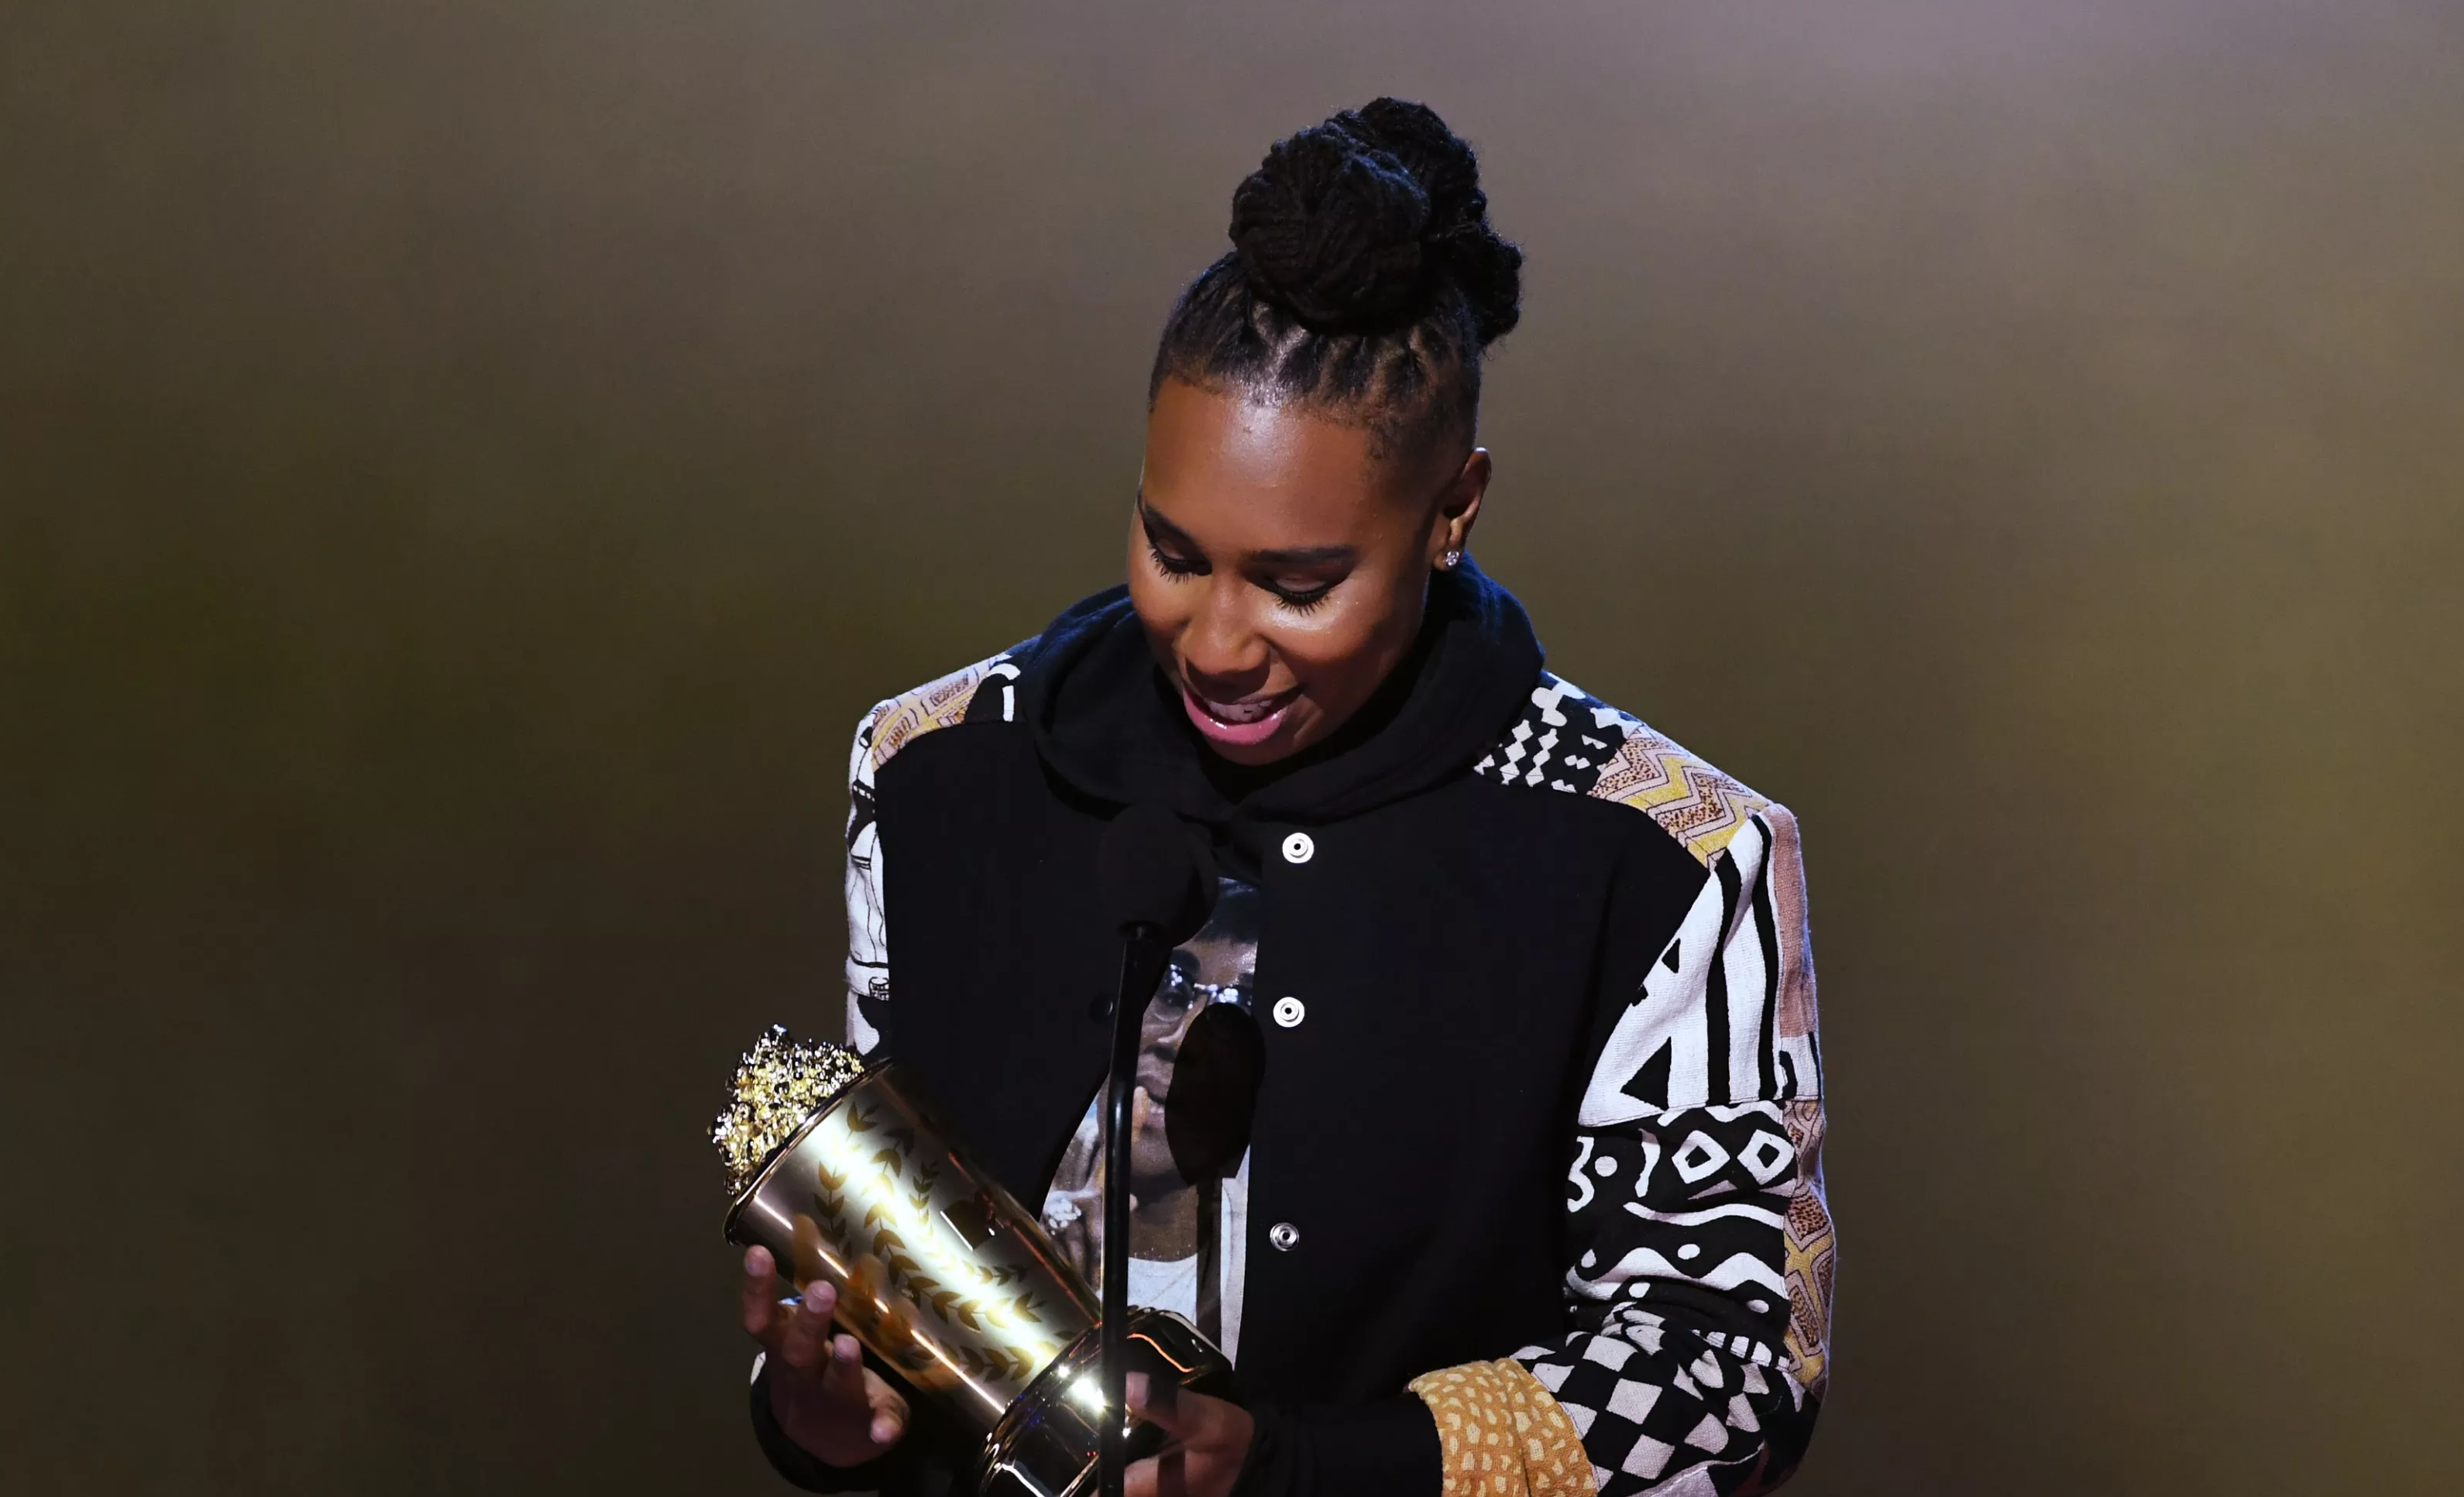 SANTA MONICA, CA – JUNE 16: Honoree Lena Waithe accepts the MTV Trailblazer Award onstage during the 2018 MTV Movie And TV Awards at Barker Hangar on June 16, 2018 in Santa Monica, California. (Photo by Kevin Winter/Getty Images for MTV)